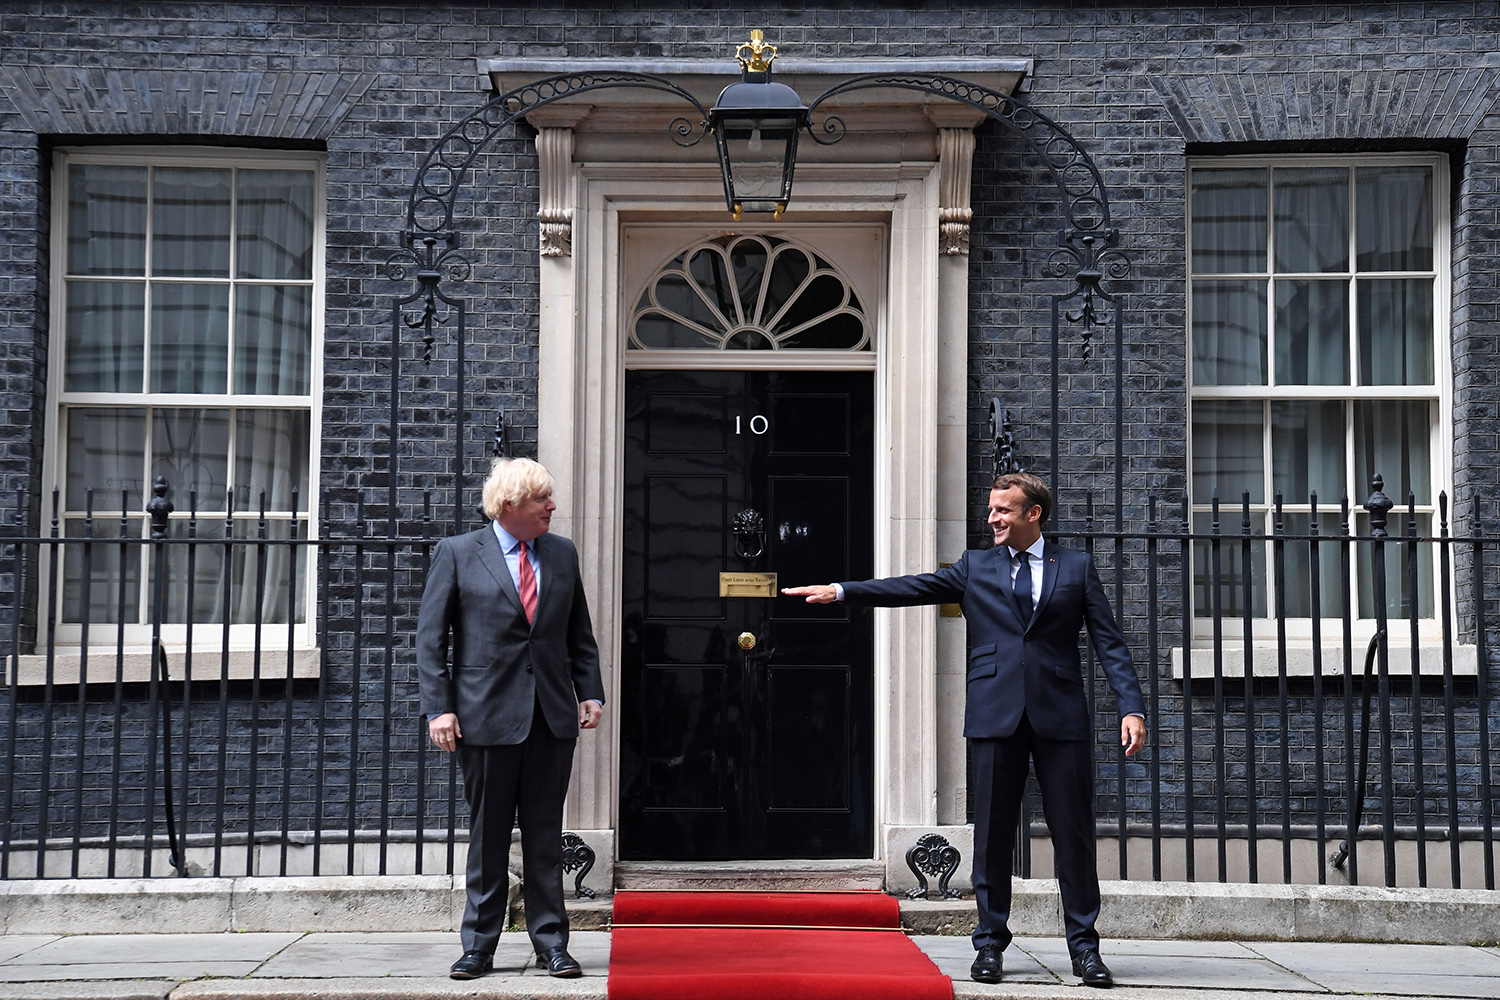 French President Emmanuel Macron (right) gestures about staying socially distant alongside British Prime Minister Boris Johnson as Macron arrives at Downing Street in central London on June 18 for a meeting. Macron was visiting London to commemorate the 80th anniversary of former French President Charles de Gaulle's appeal to French people to resist the Nazi occupation during World War II. DANIEL LEAL-OLIVAS/AFP via Getty Images